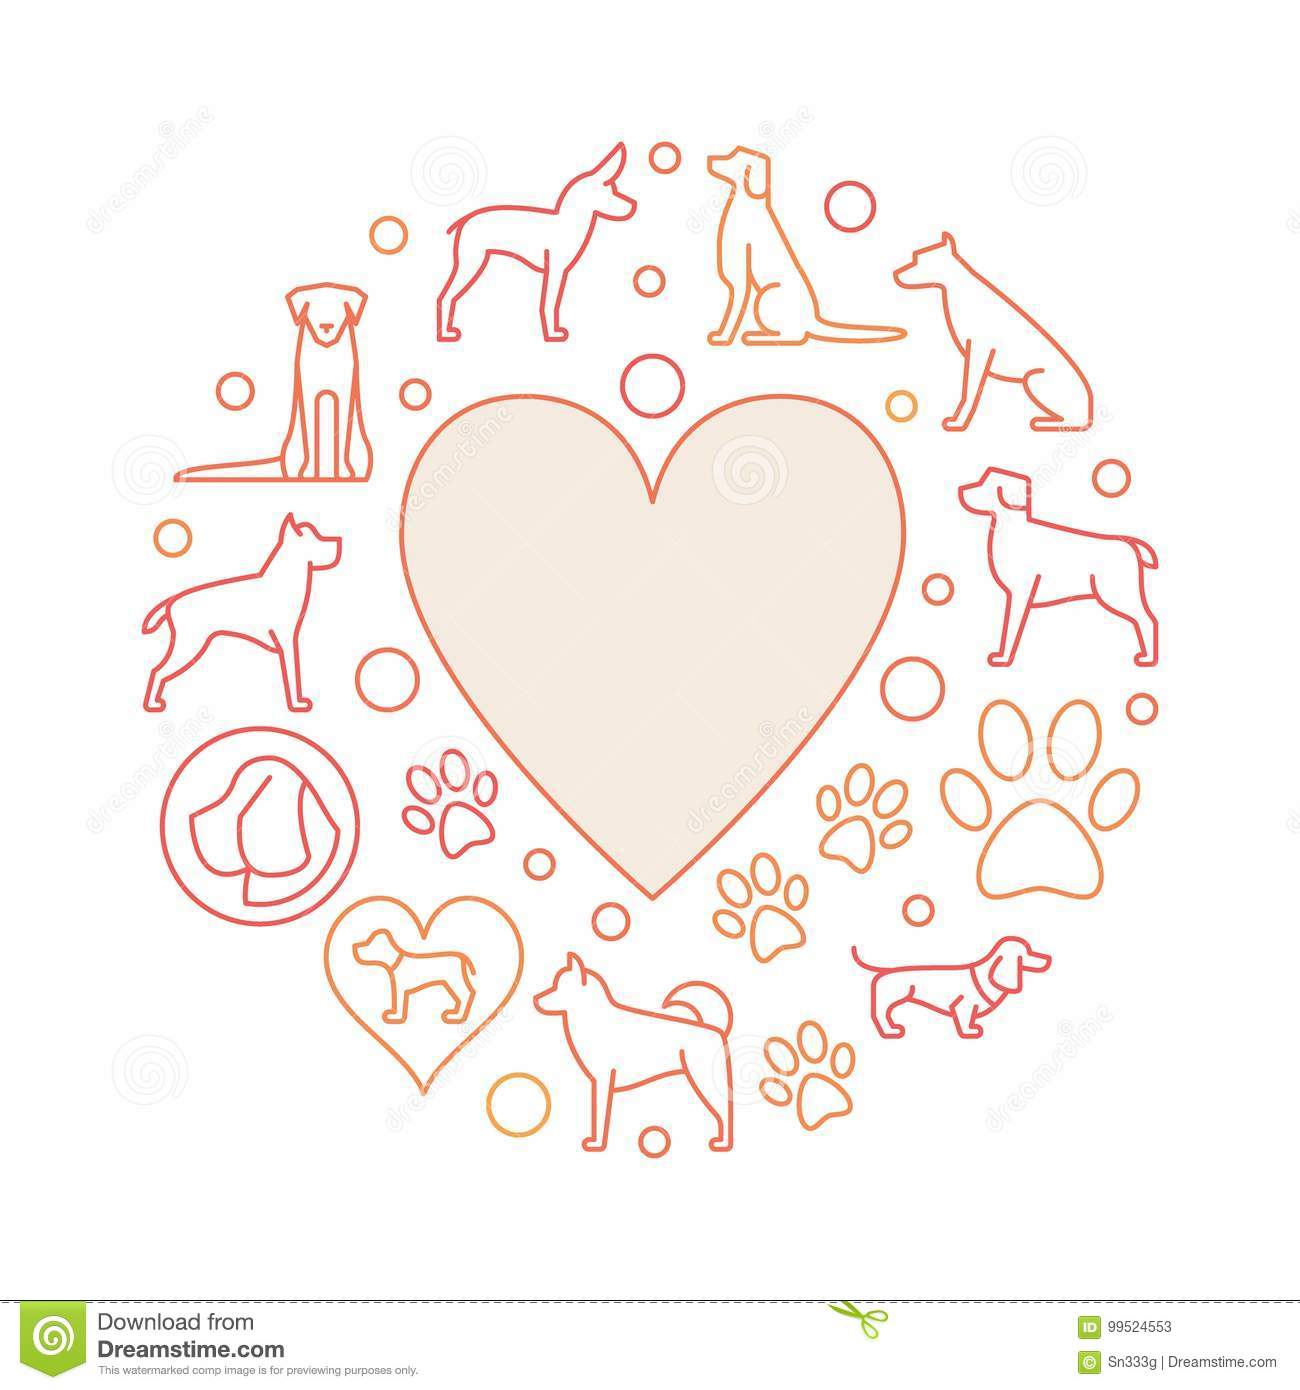 Heart with dog icons round illustration